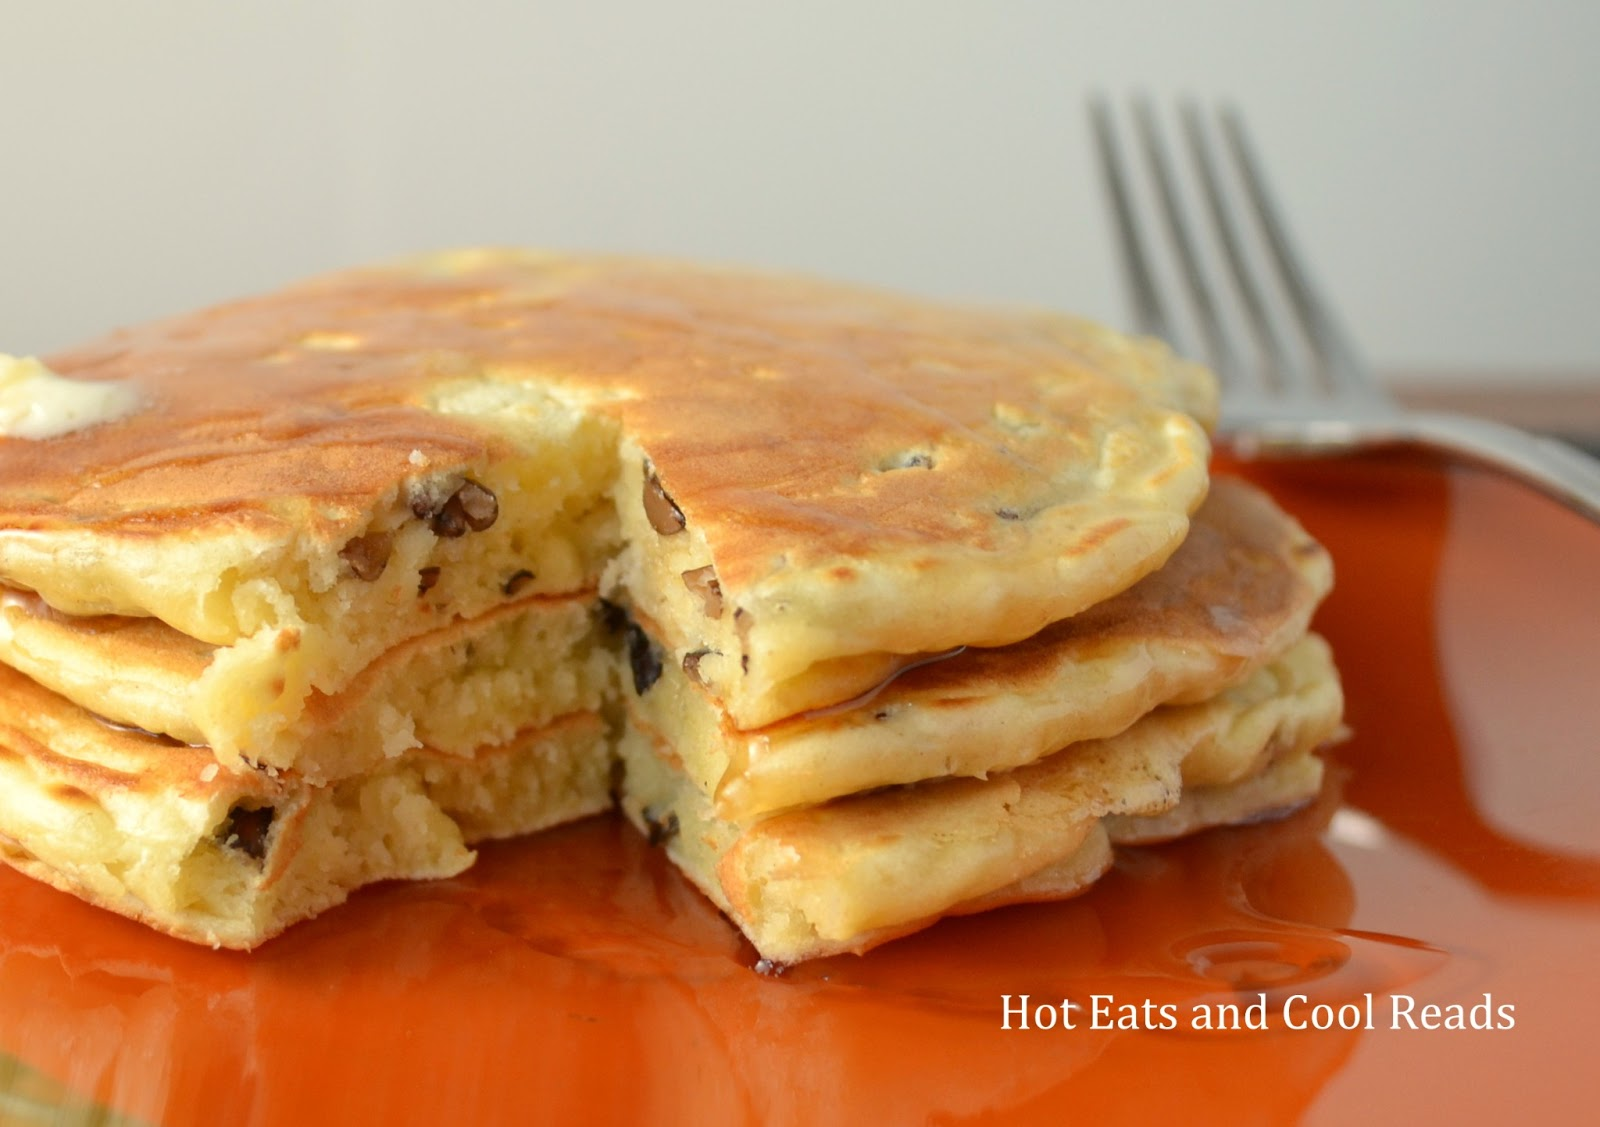 Hot Eats and Cool Reads: Wild Rice Pancakes Recipe